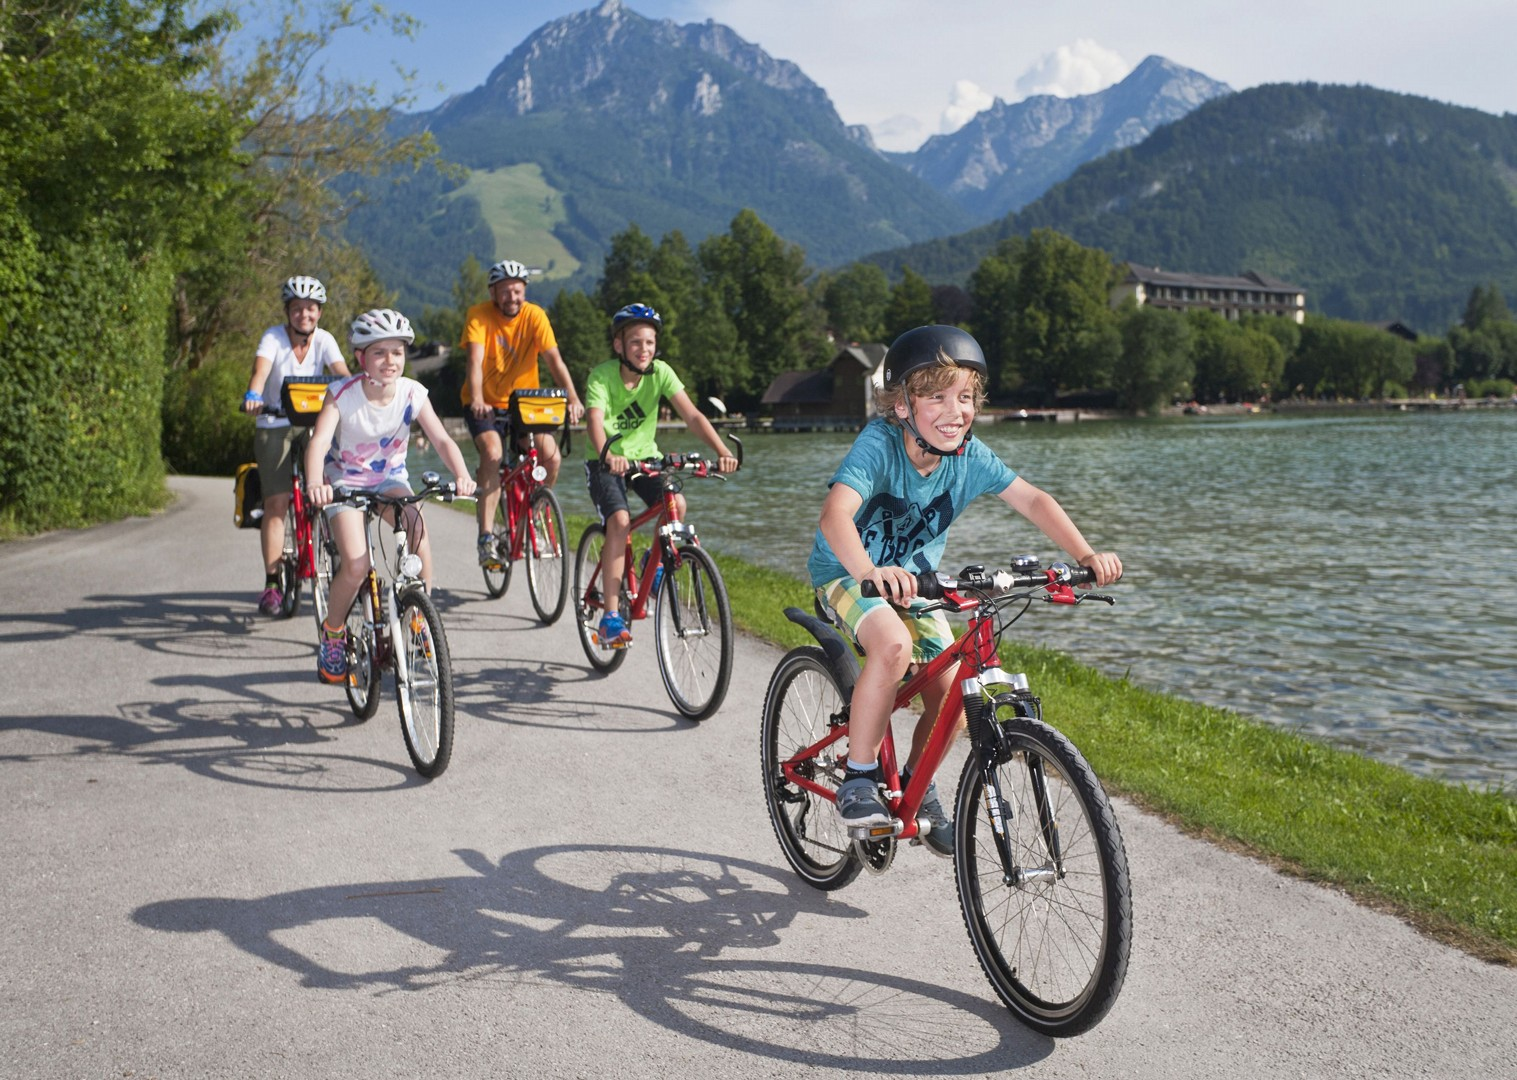 smooth-flat-roads-for-family-biking-austria-ten-lakes-tour.jpg - Austria - Ten Lakes Tour - Self-Guided Family Cycling Holiday - Family Cycling